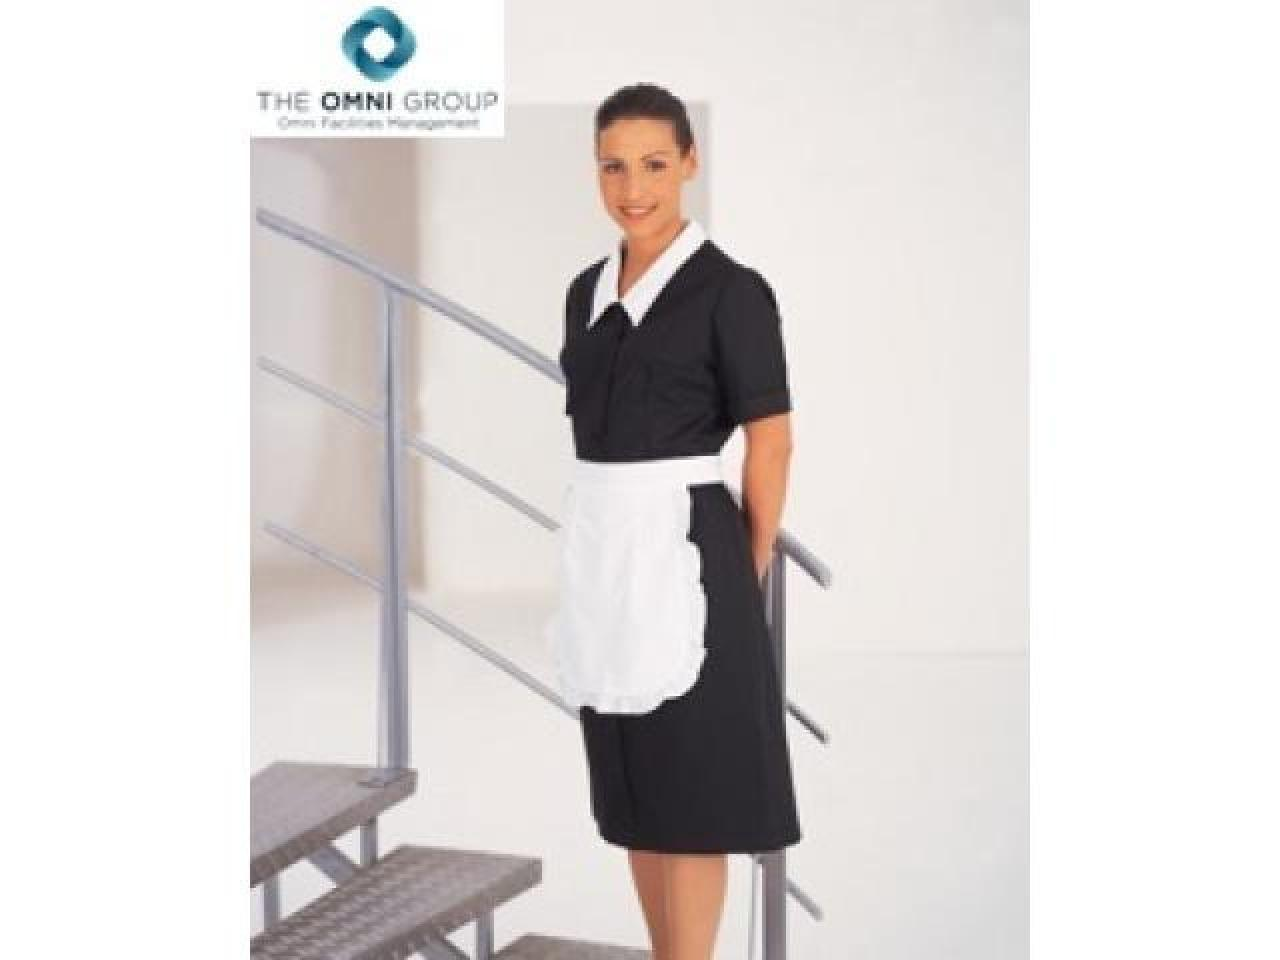 Housekeeping Room Attendants required urgently in central London. - 1